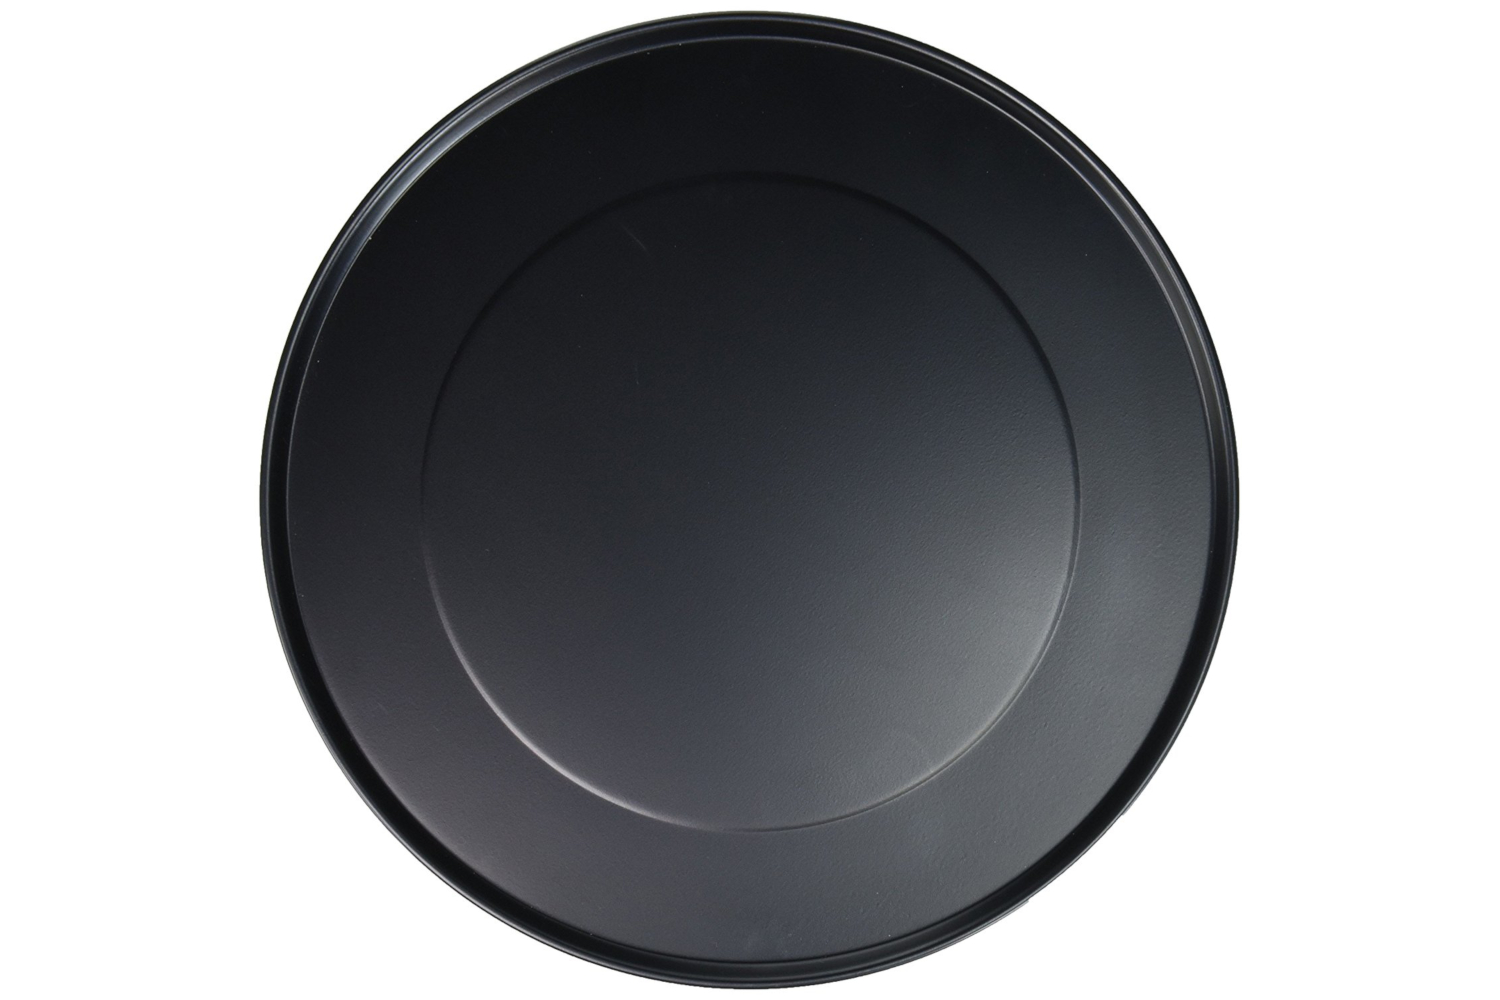 Breville 11 inch Nonstick Pizza Pan for Mini Smart Oven